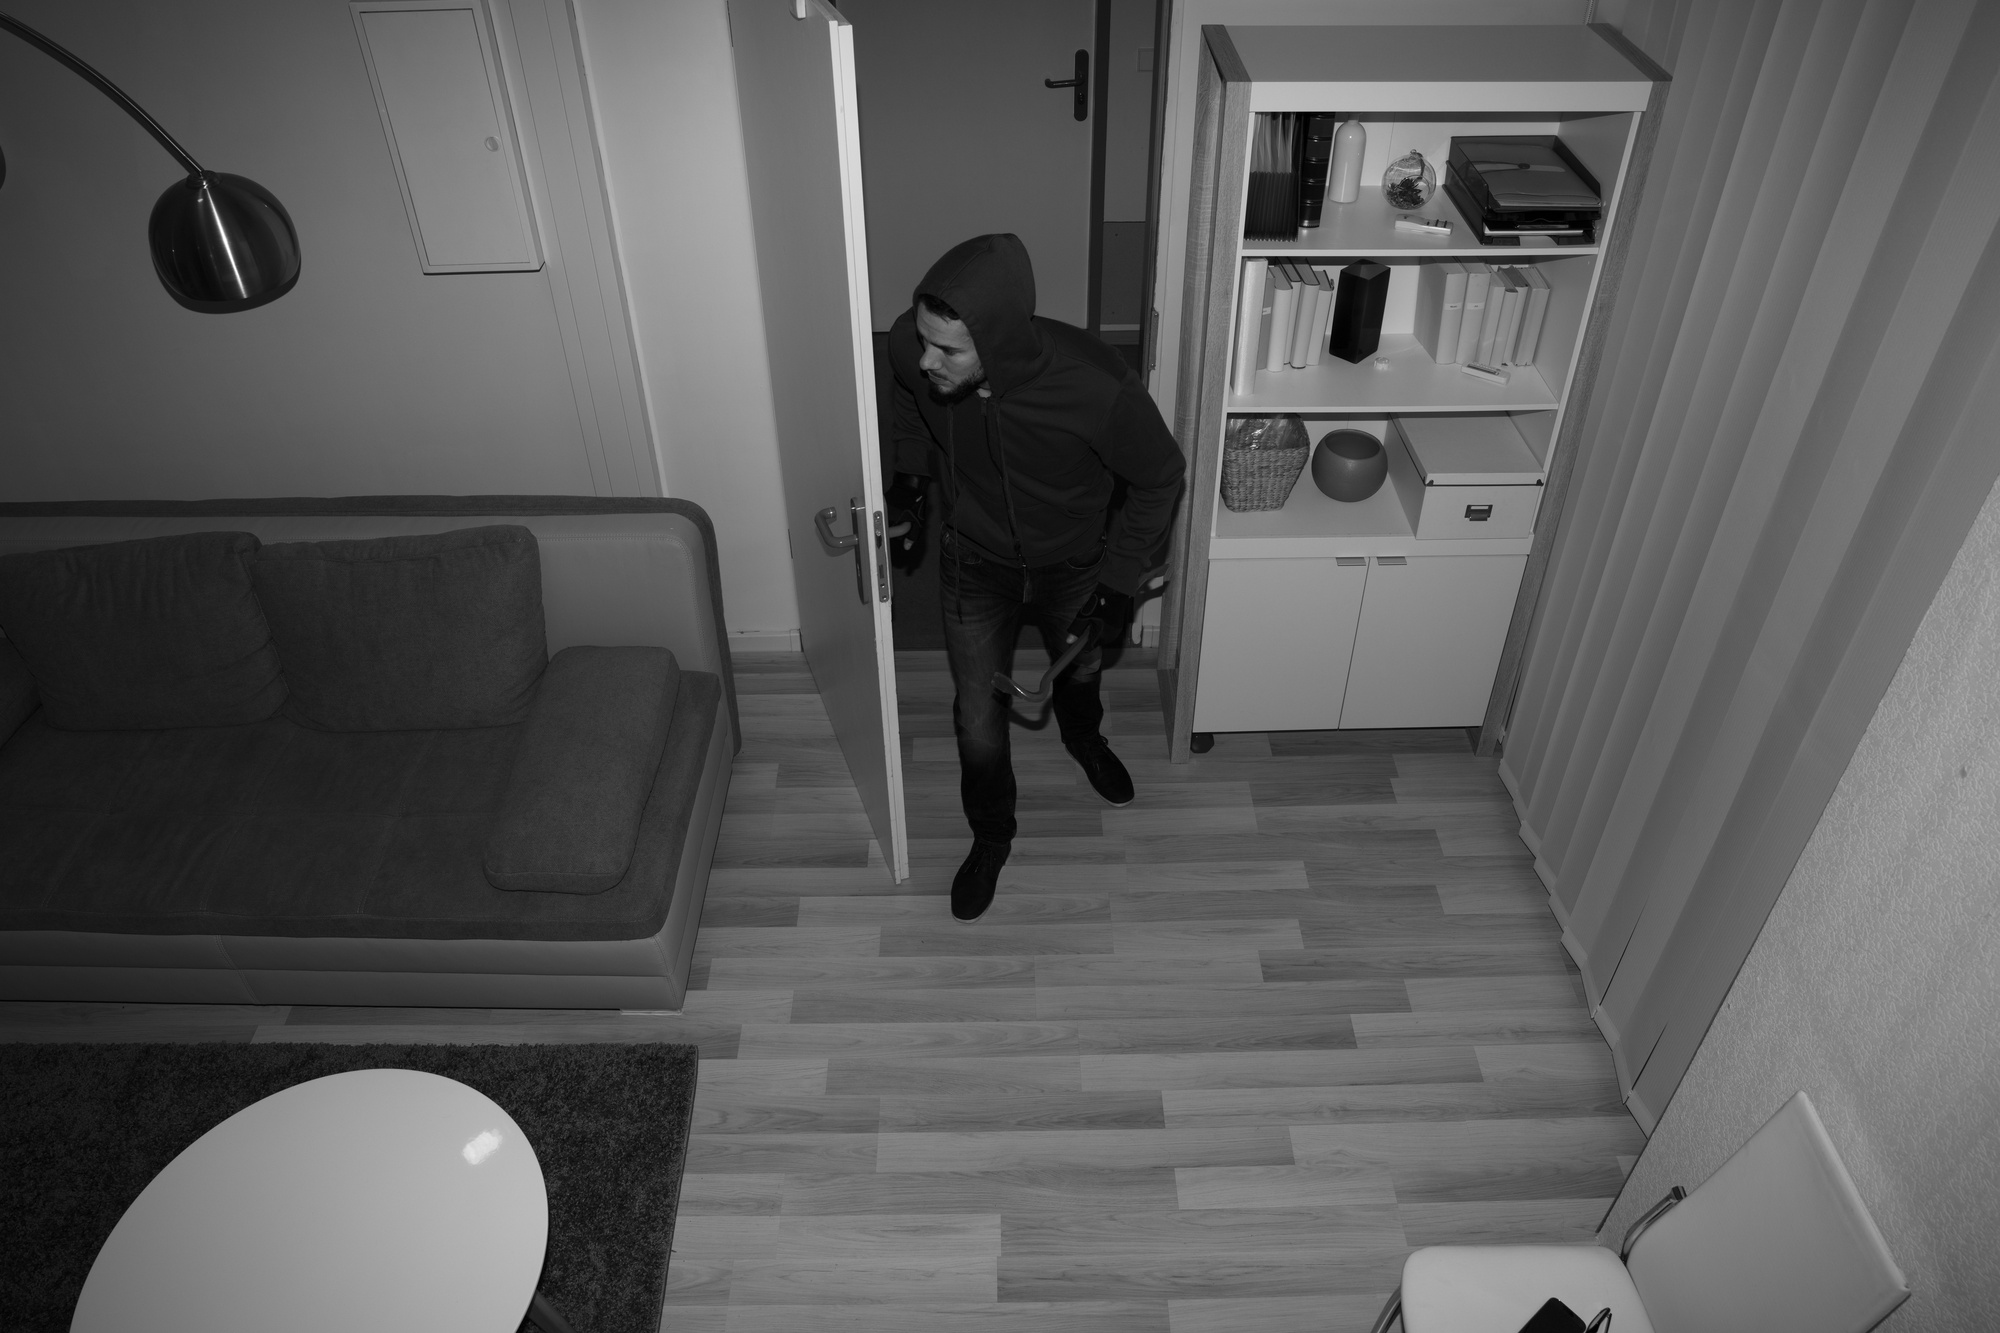 What to Do When You Catch an Intruder in Your Home